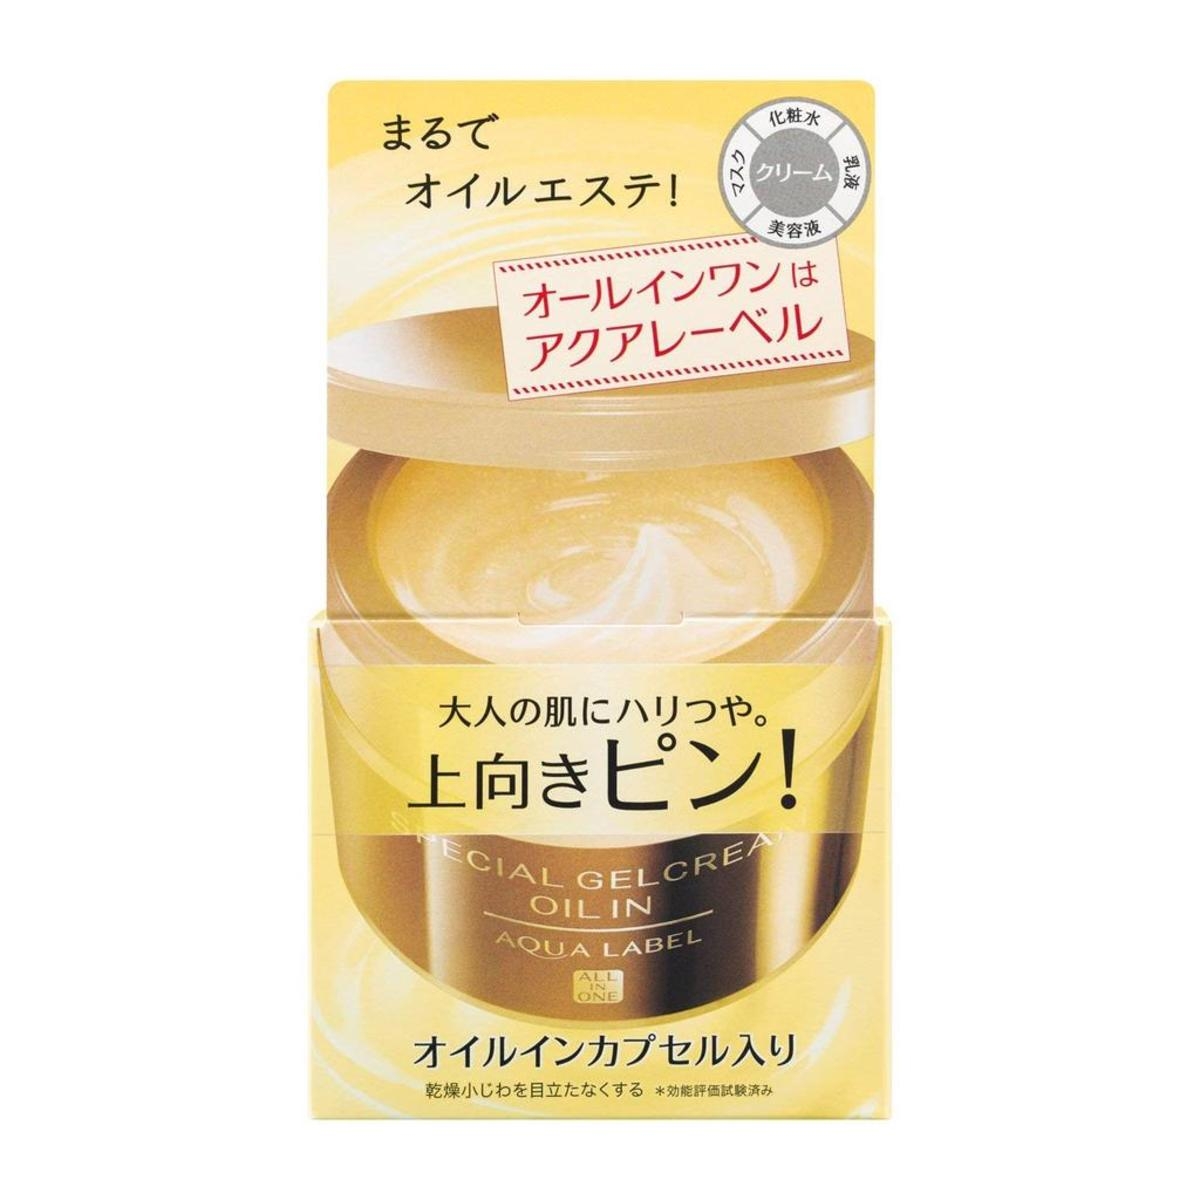 AquaLabel 5 in 1 Special Gel Cream 90g(Gold and New Version)